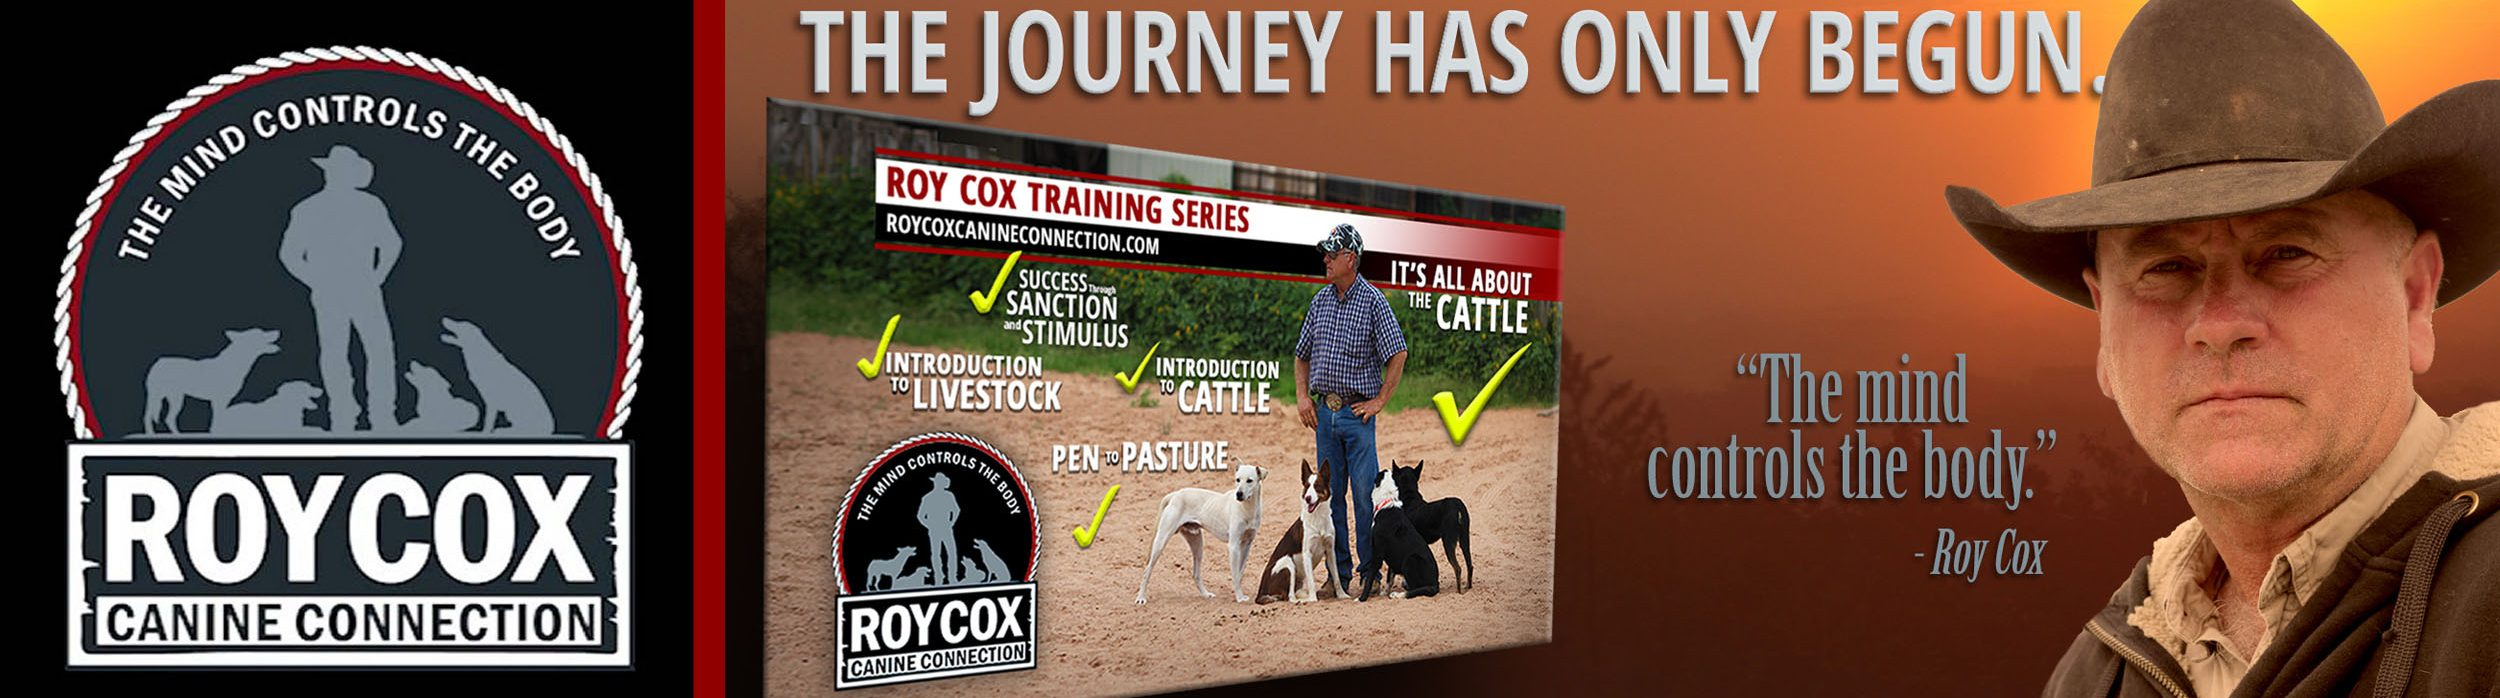 Roy Cox Canine Connection